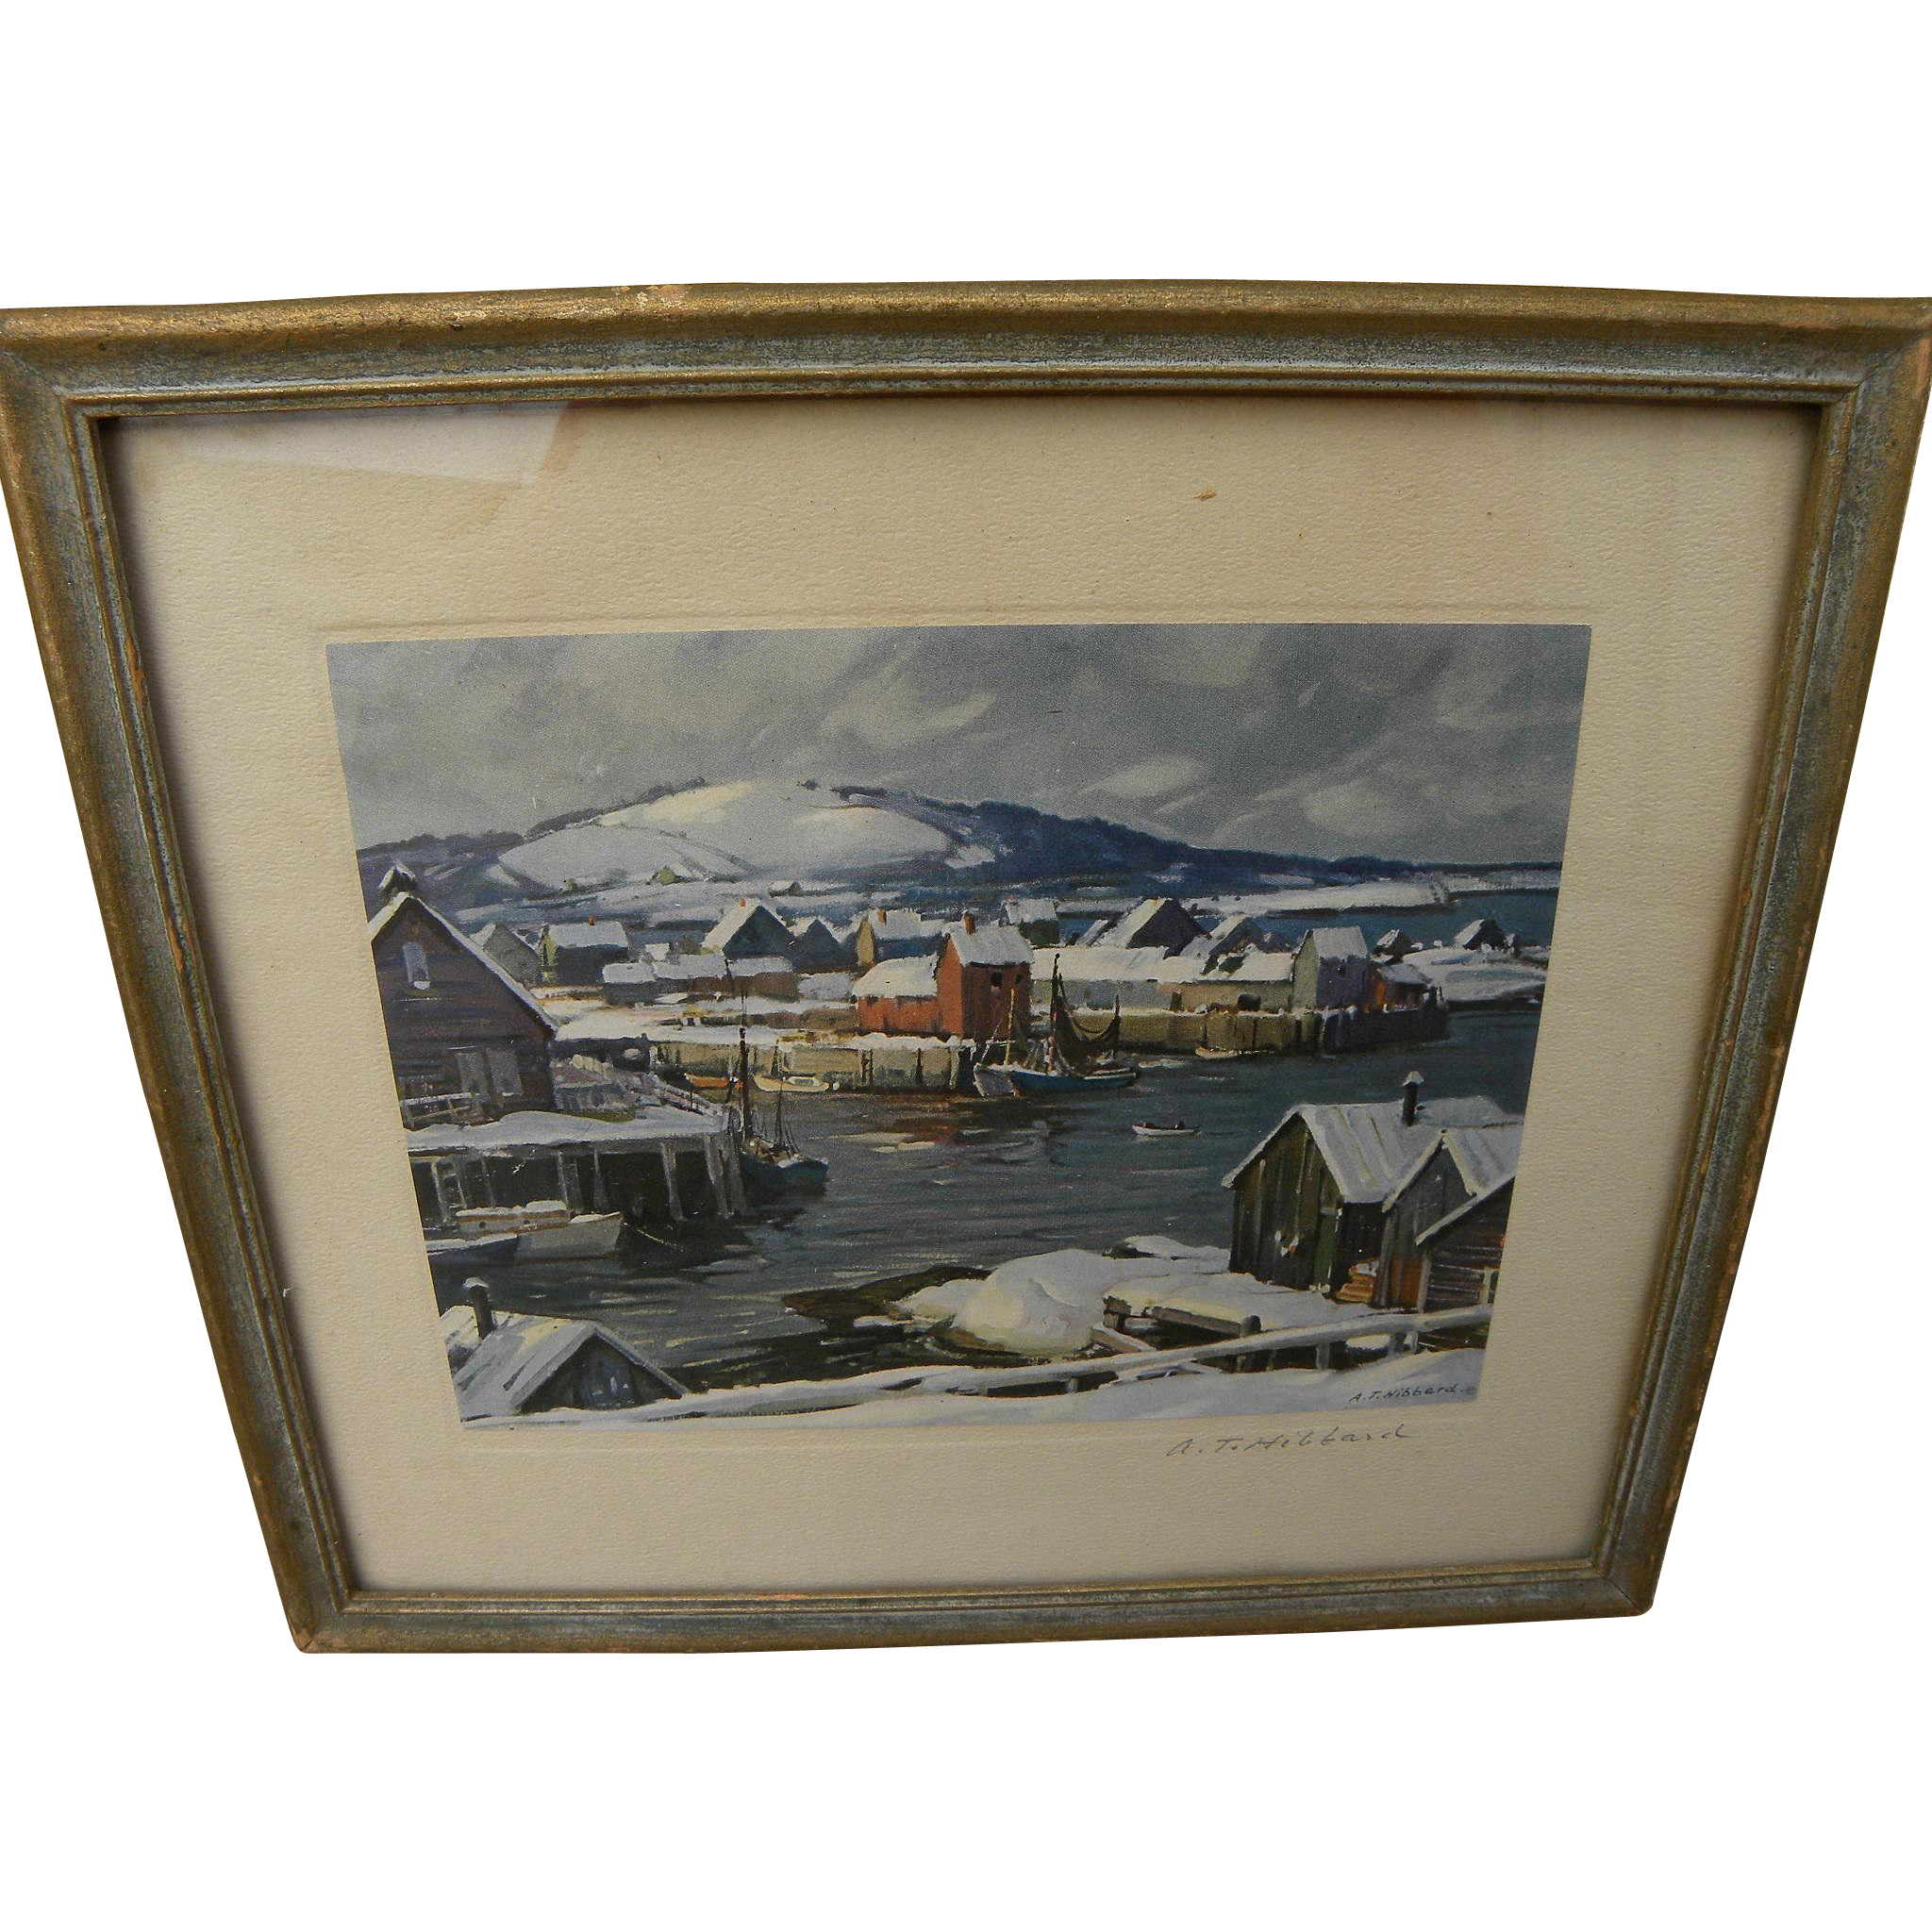 ALDRO THOMPSON HIBBARD (1886-1972) pencil signed print by important New England plein air painter